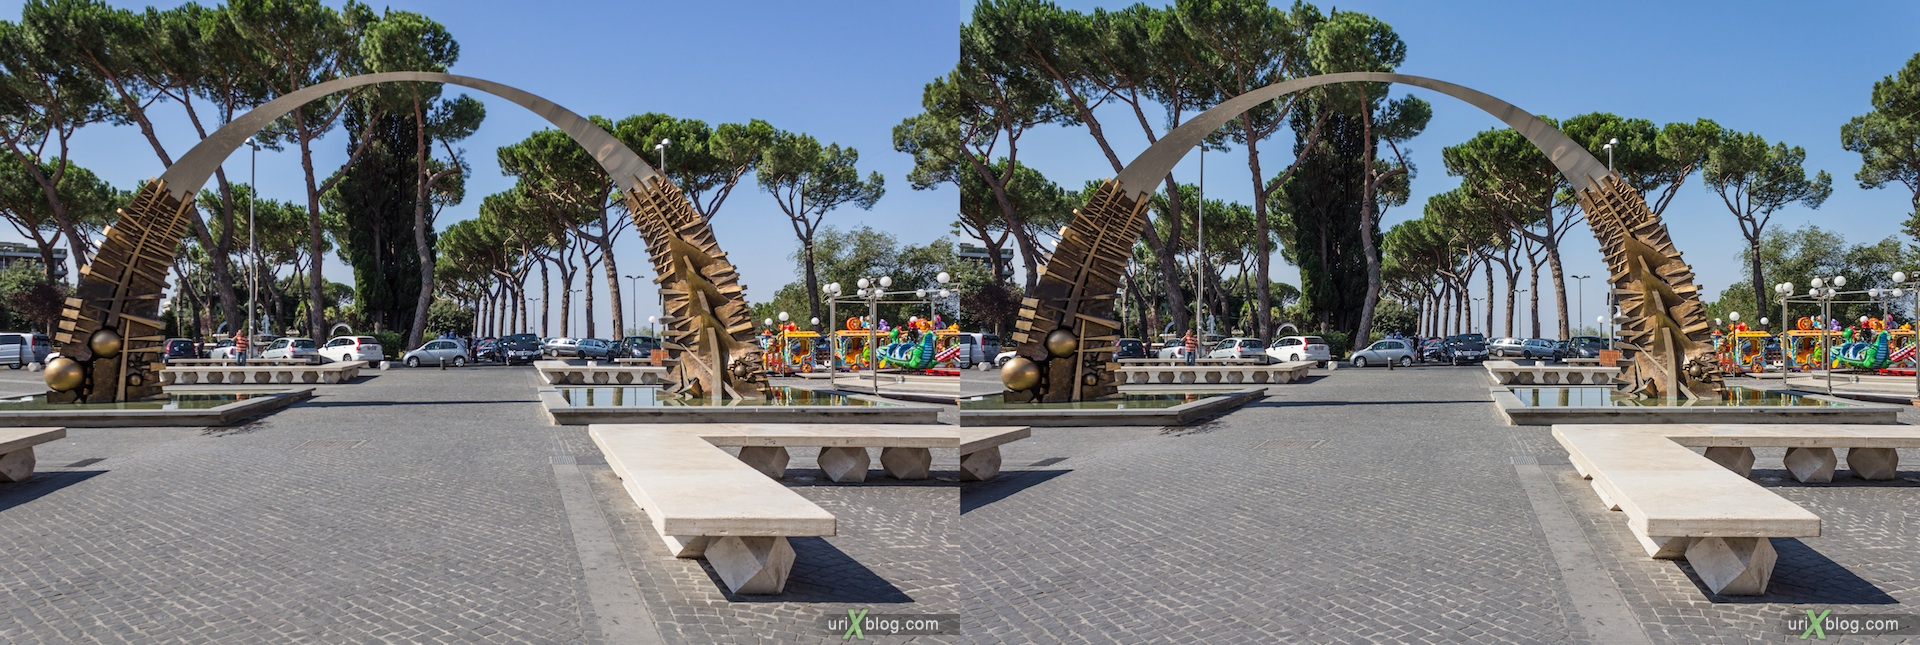 2012, square, arch, Tivoli, Italy, 3D, stereo pair, cross-eyed, crossview